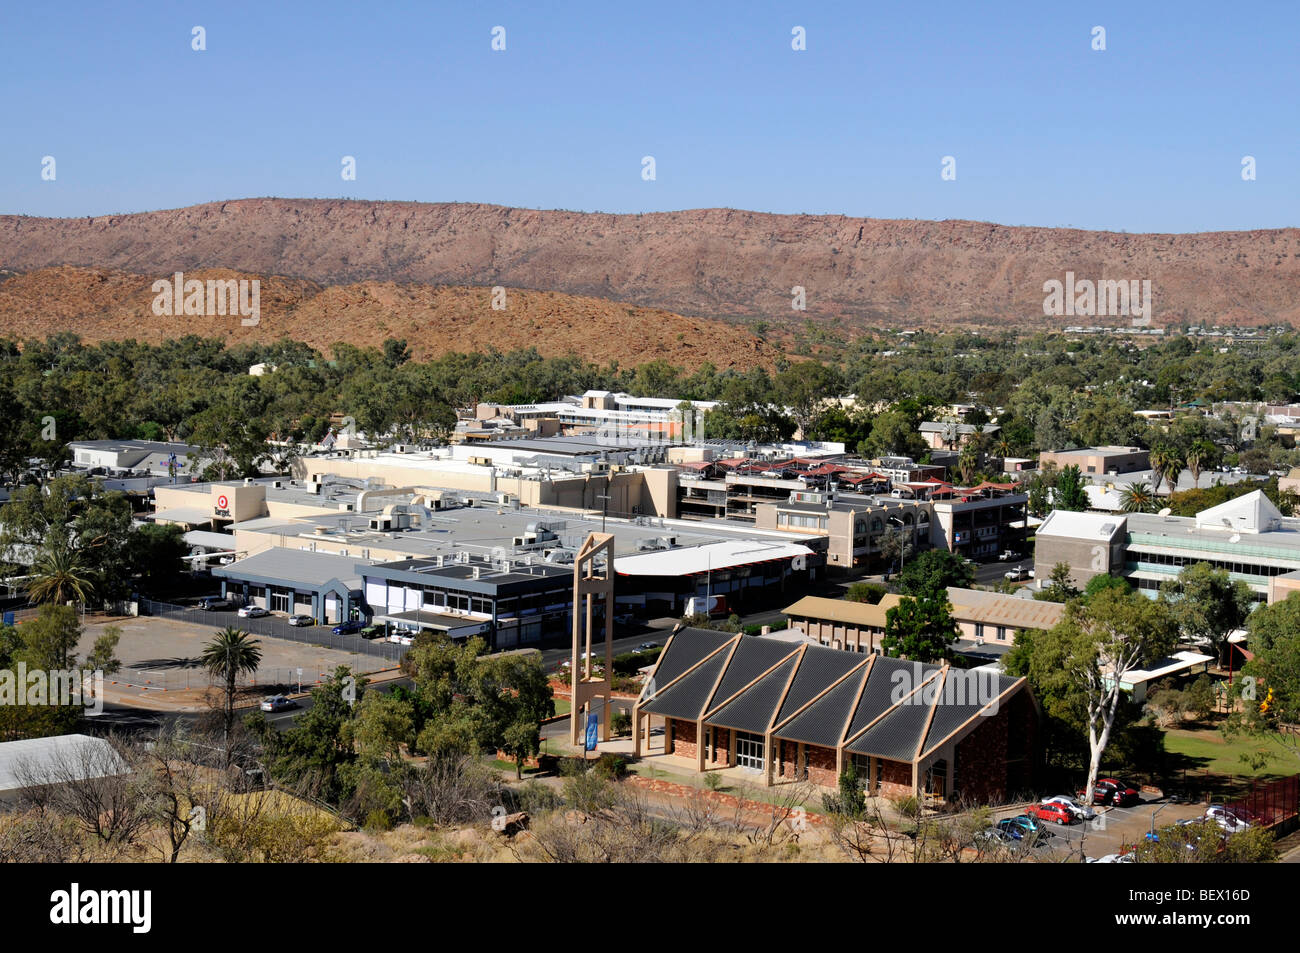 Skyline of Alice Springs, Australia - Stock Image